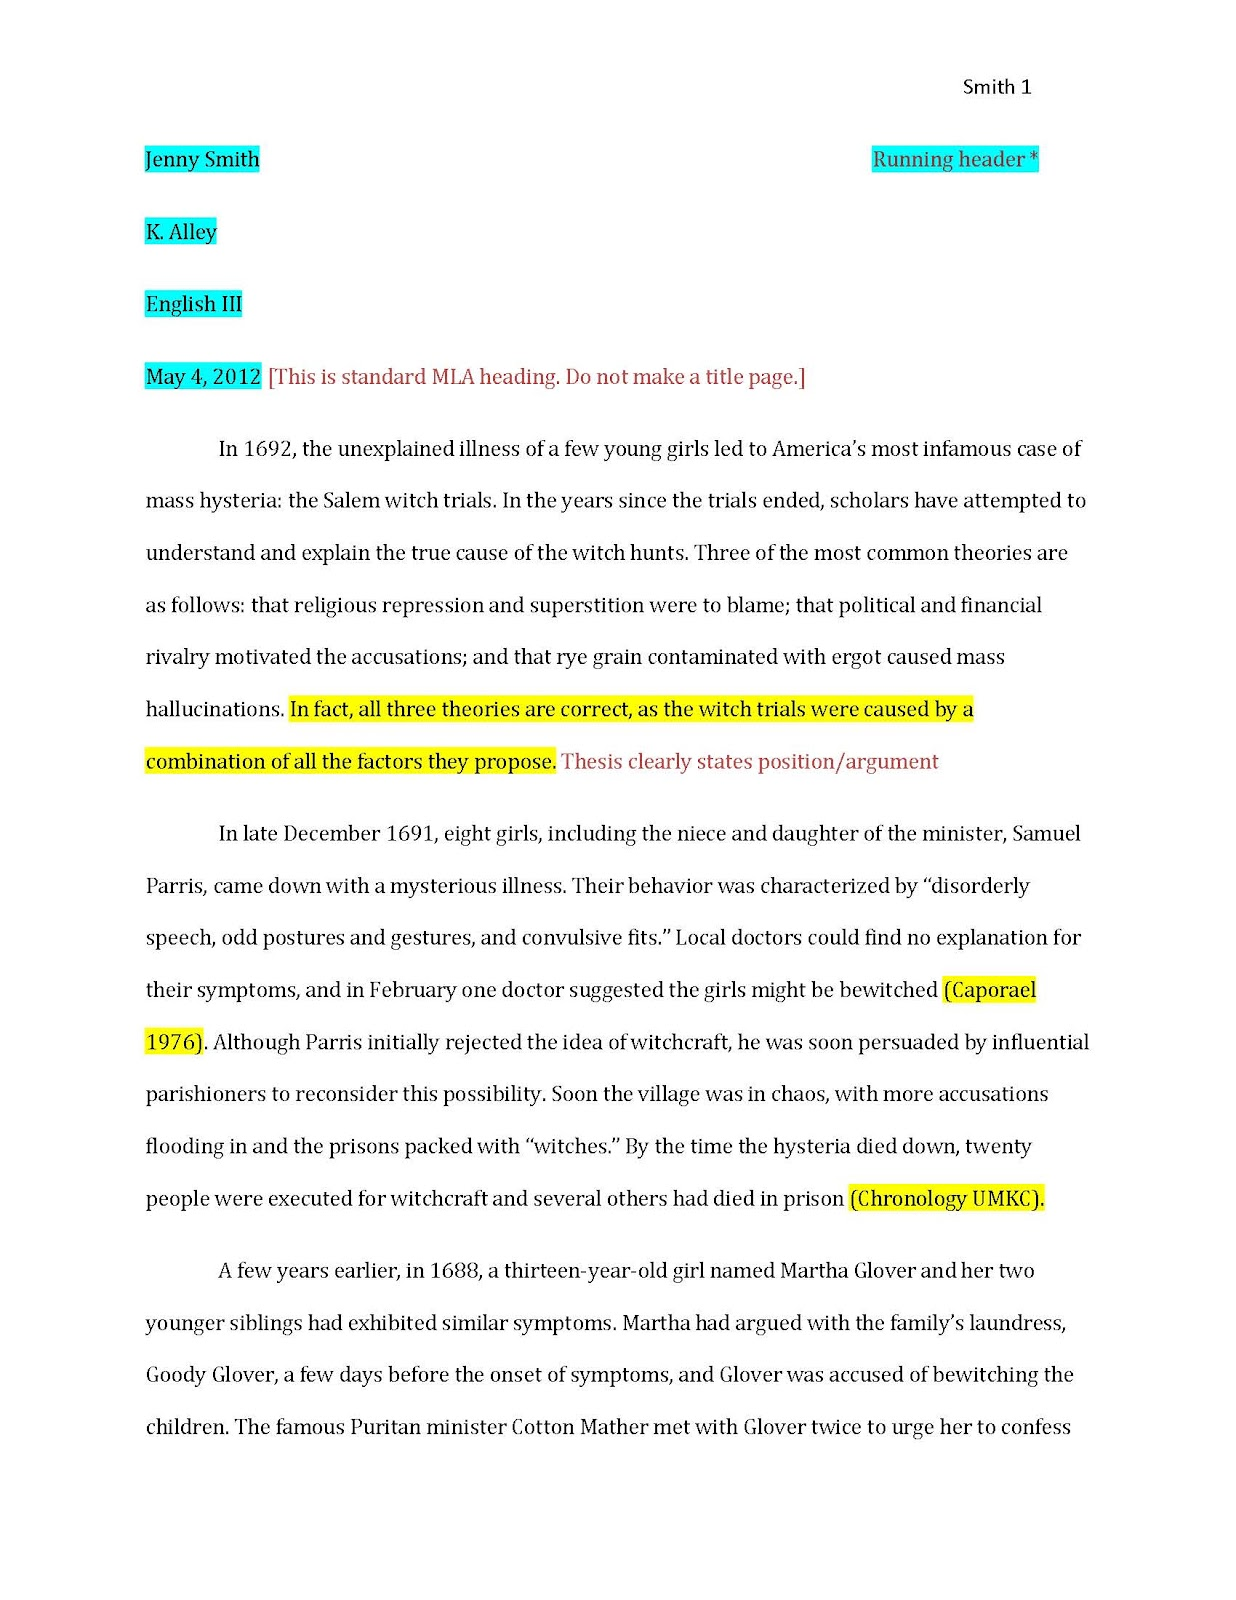 012 Essay Example How To Cite In Examplepaper Page 1 Best A Evidence Research Paper Format College Put Citation Apa Full